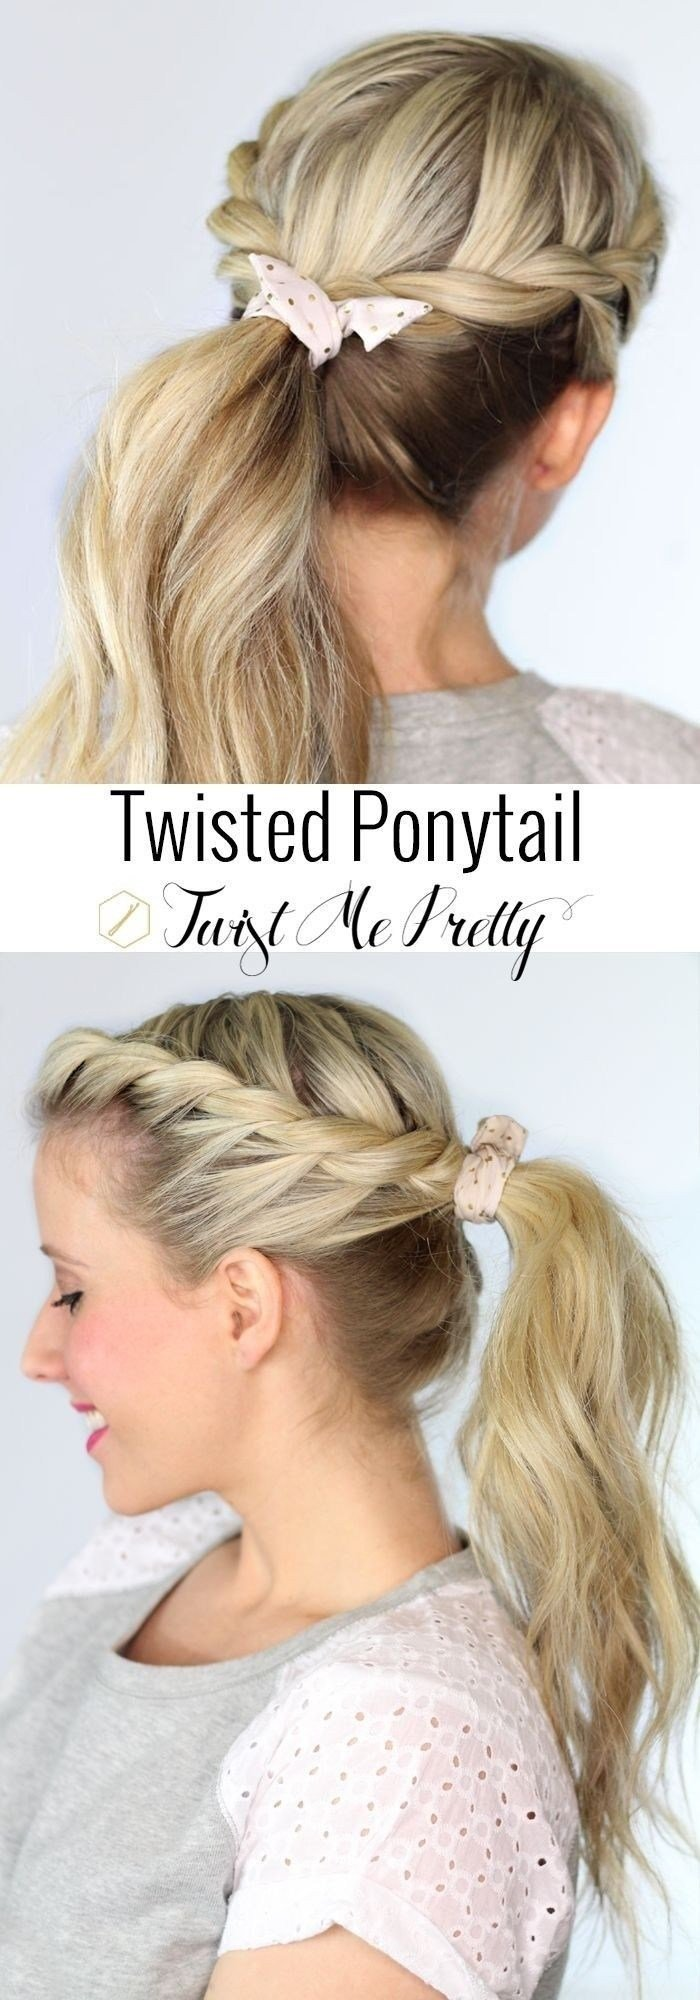 New 20 Ponytail Hairstyles Discover Latest Ponytail Ideas Now Ideas With Pictures